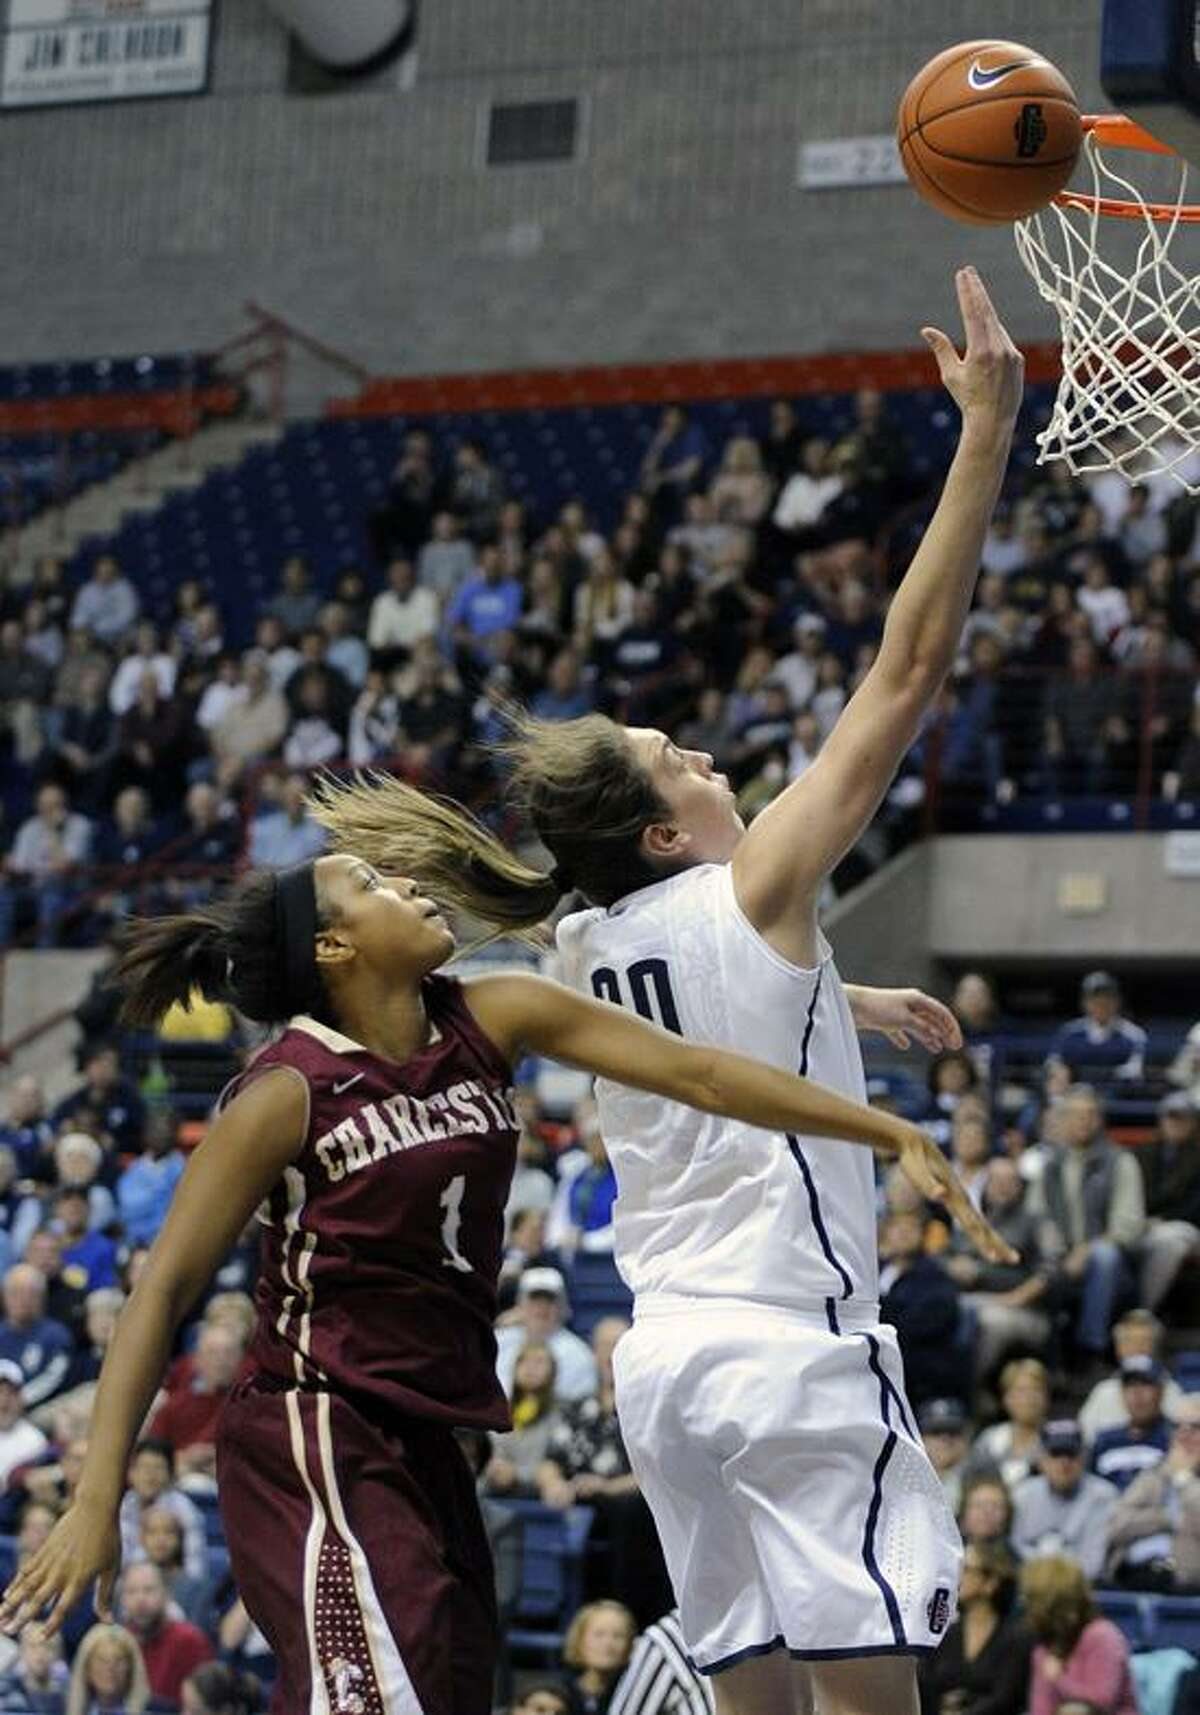 Connecticut's Breanna Stewart, right, drives past Charleston's Alyssa Frye during the first half of an NCAA college basketball game in Storrs, Conn., Sunday, Nov. 11, 2012. Stewart scored a game-high 21 points and Frye a team-high 14 in Connecticut's 103-39 victory. (AP Photo/Fred Beckham)